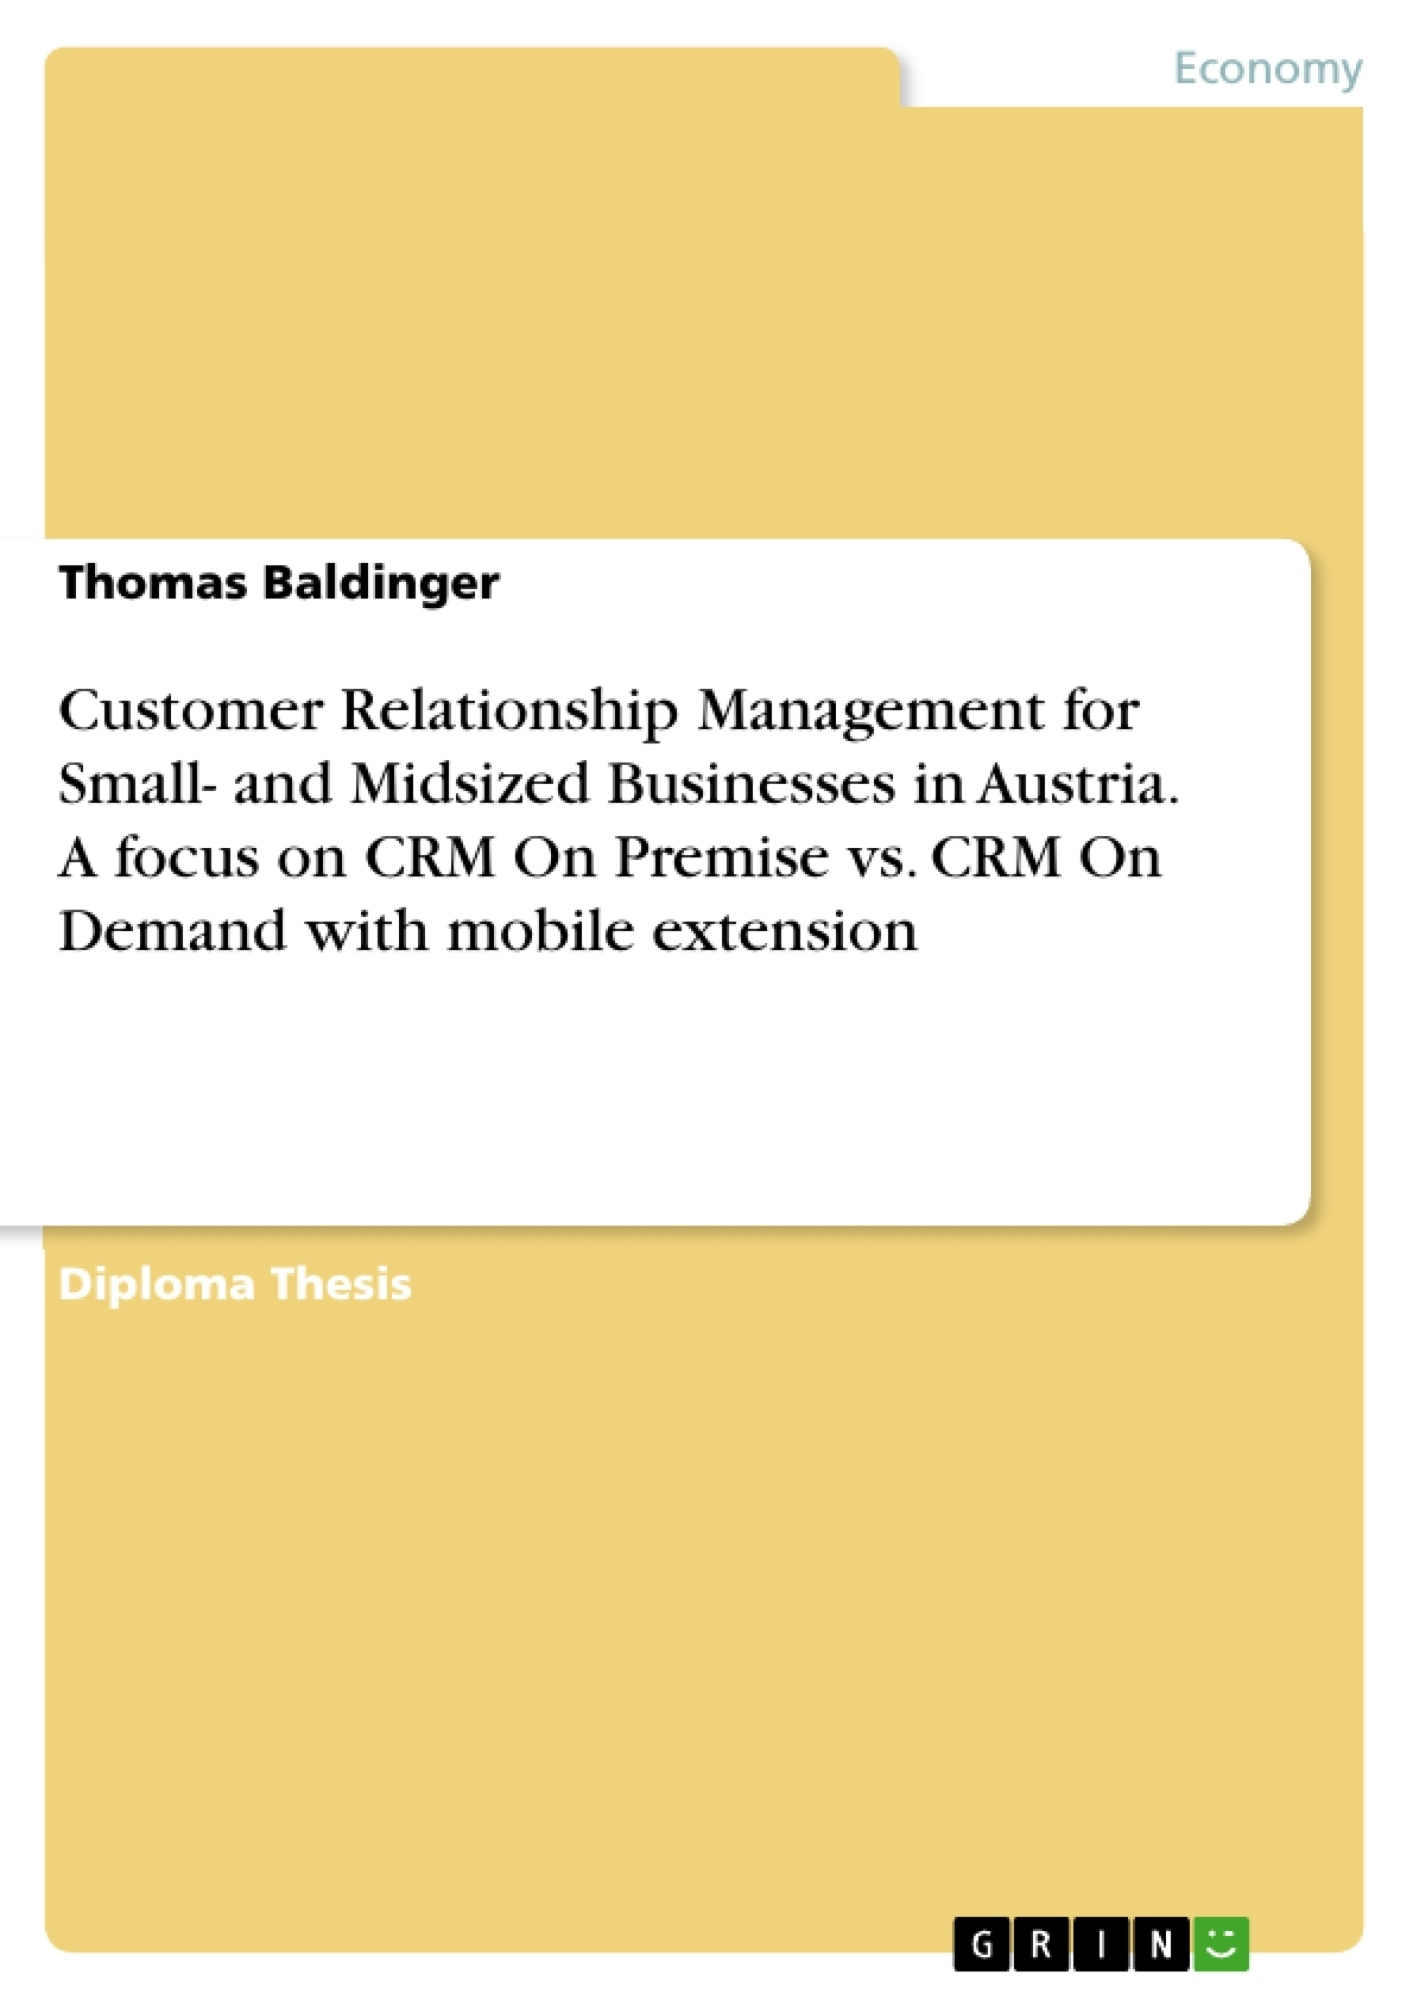 Title: Customer Relationship Management for Small- and Midsized Businesses in Austria. A focus on CRM On Premise vs. CRM On Demand with mobile extension